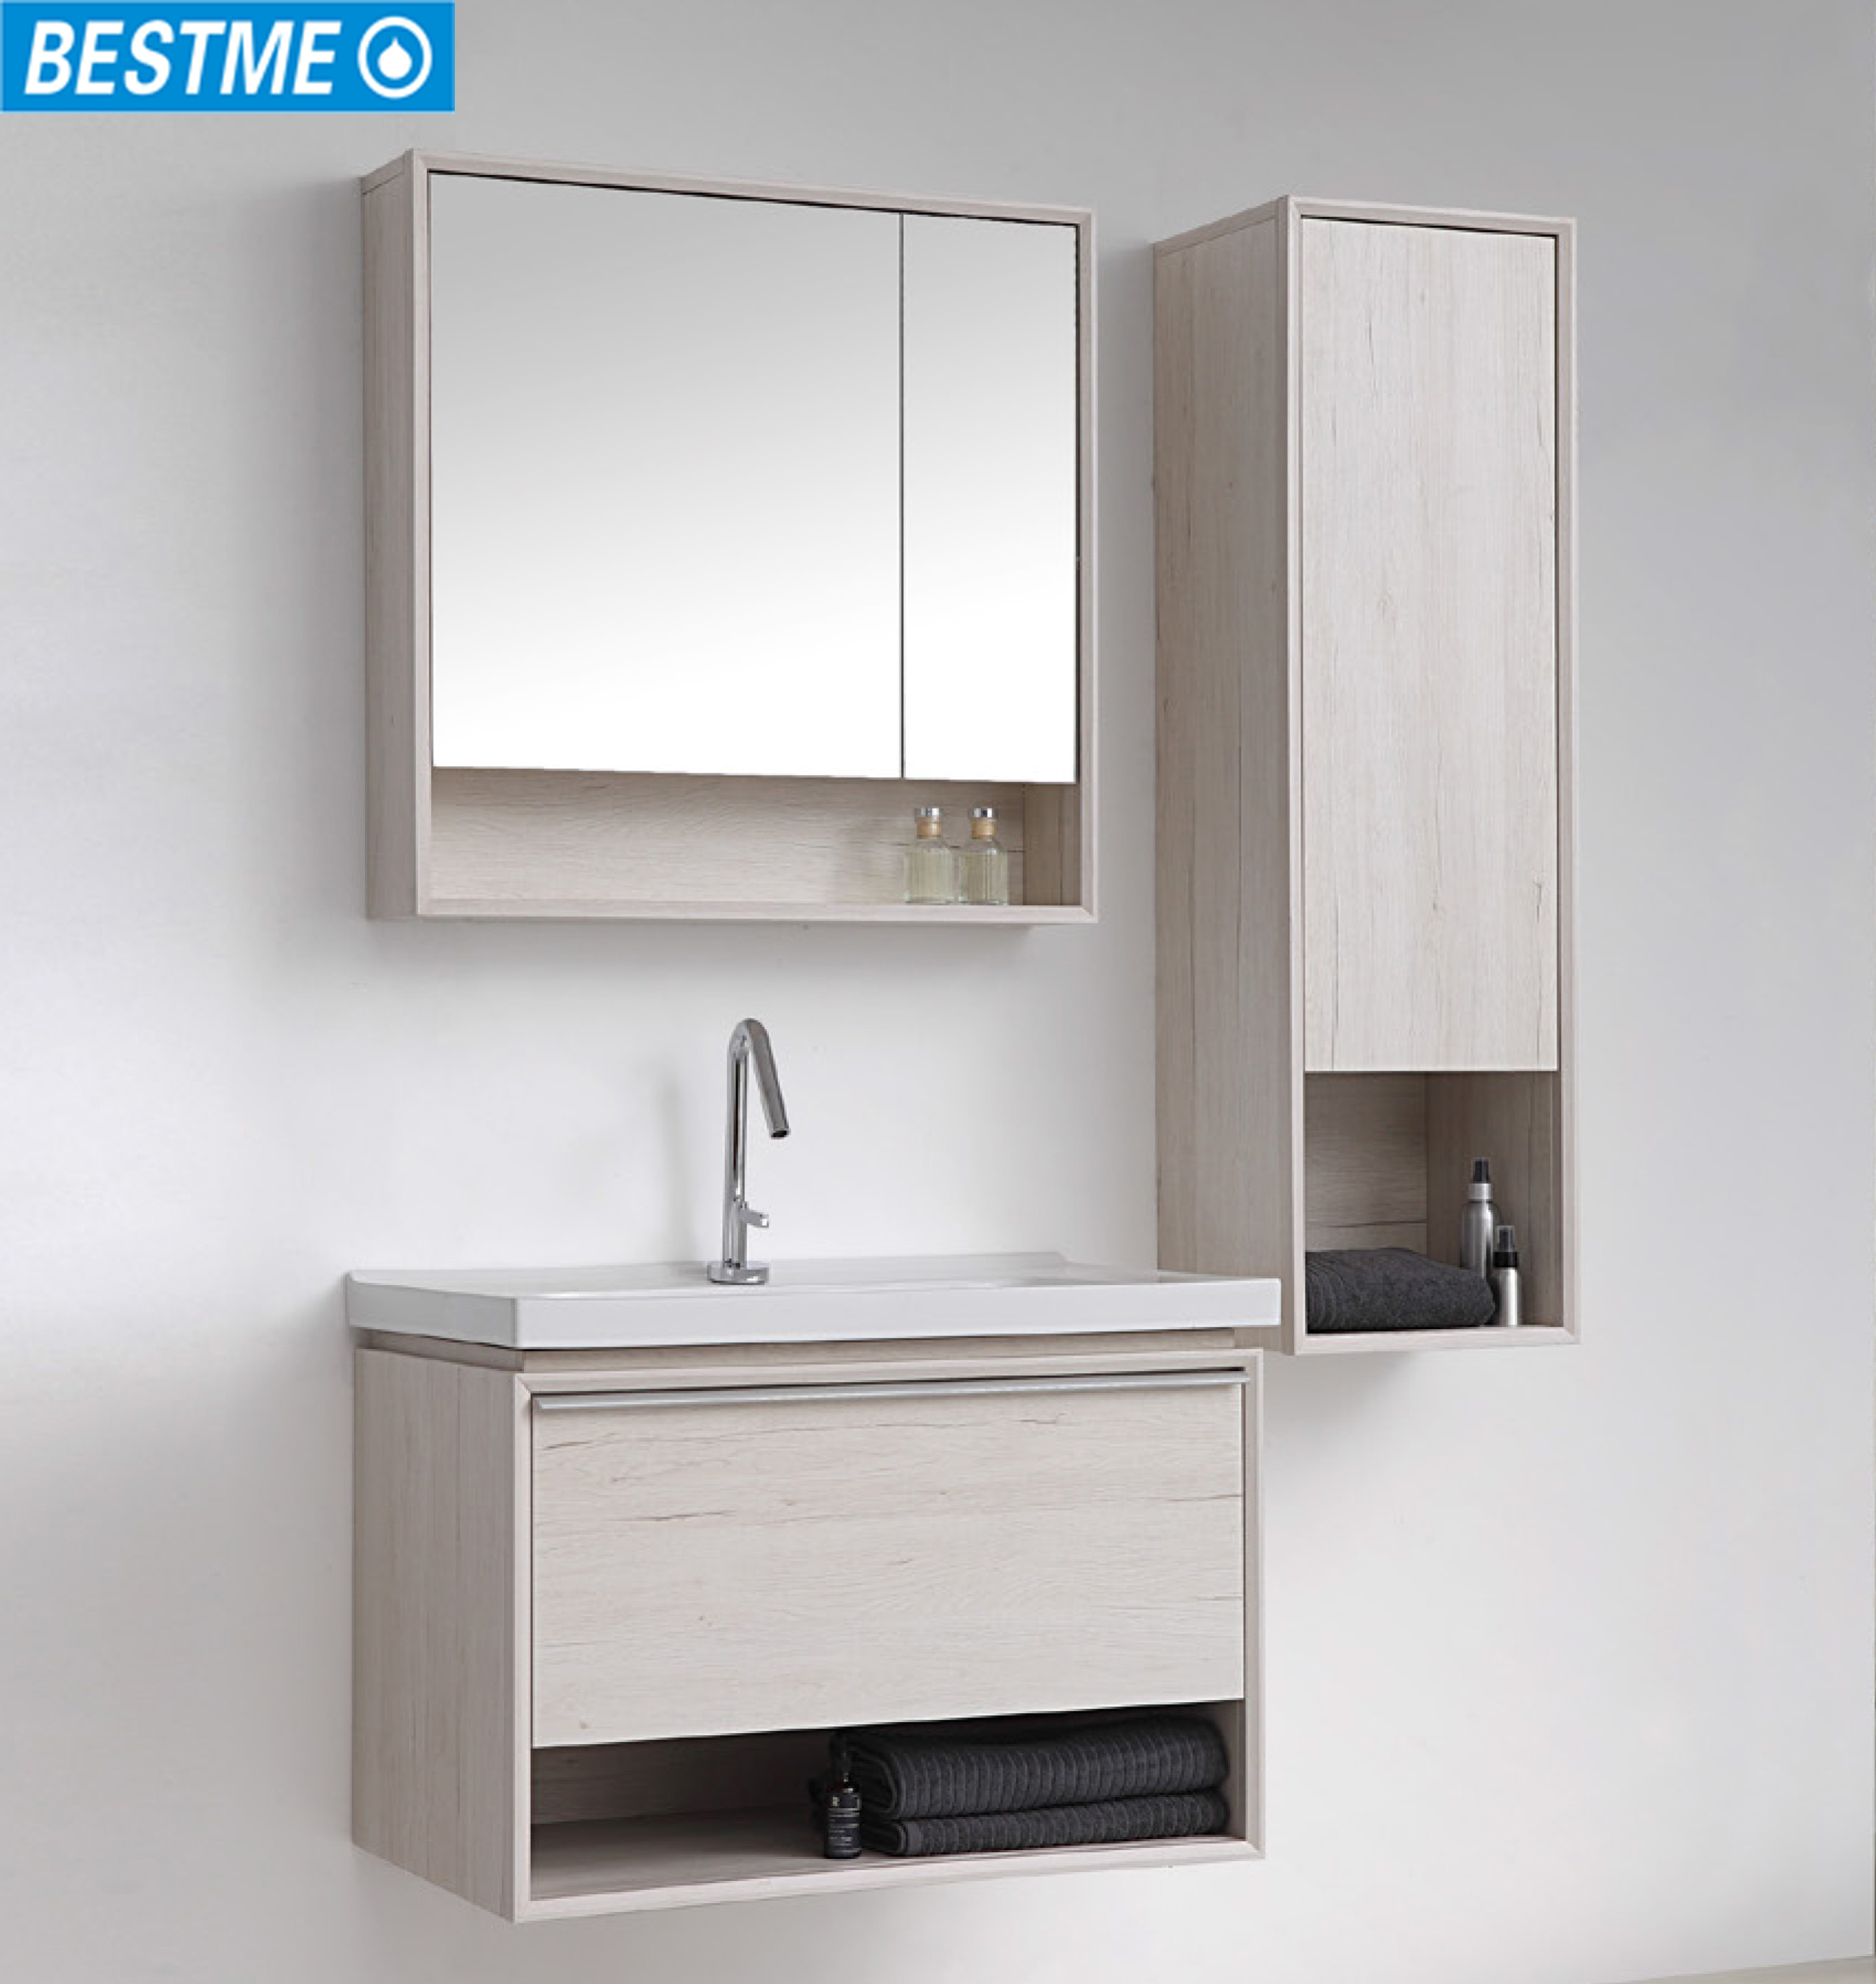 Bathroom Wall Mounted Modern Vanity Branco Para Casa